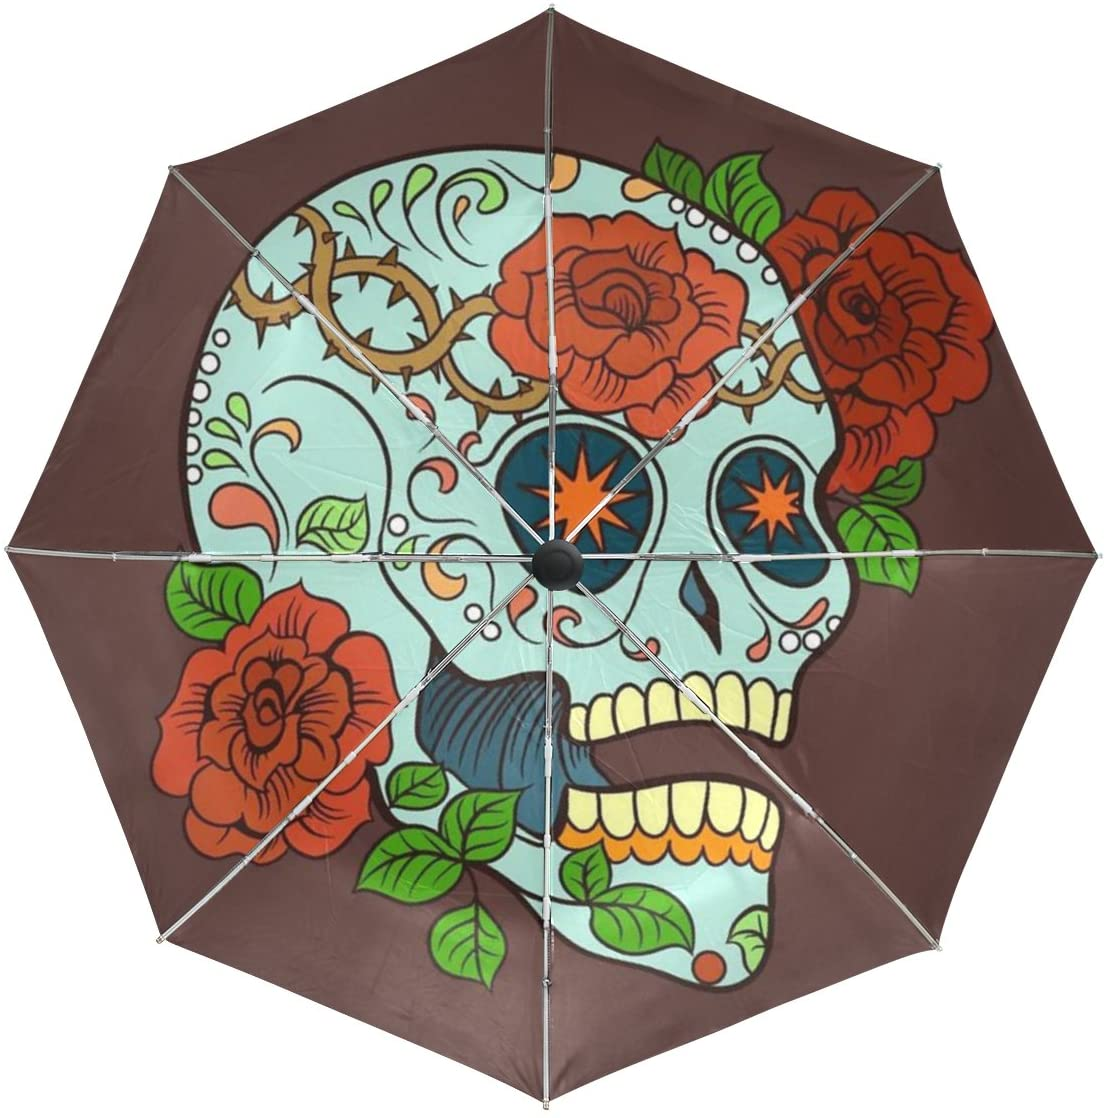 Vipsk Automatic Umbrellas, Windproof Lightweight Windproof Anti Color Skull Rose Compact Folding Umbrellas with Anti-Slip Rubberized Grip, for Business and Travels or Summer Gifts